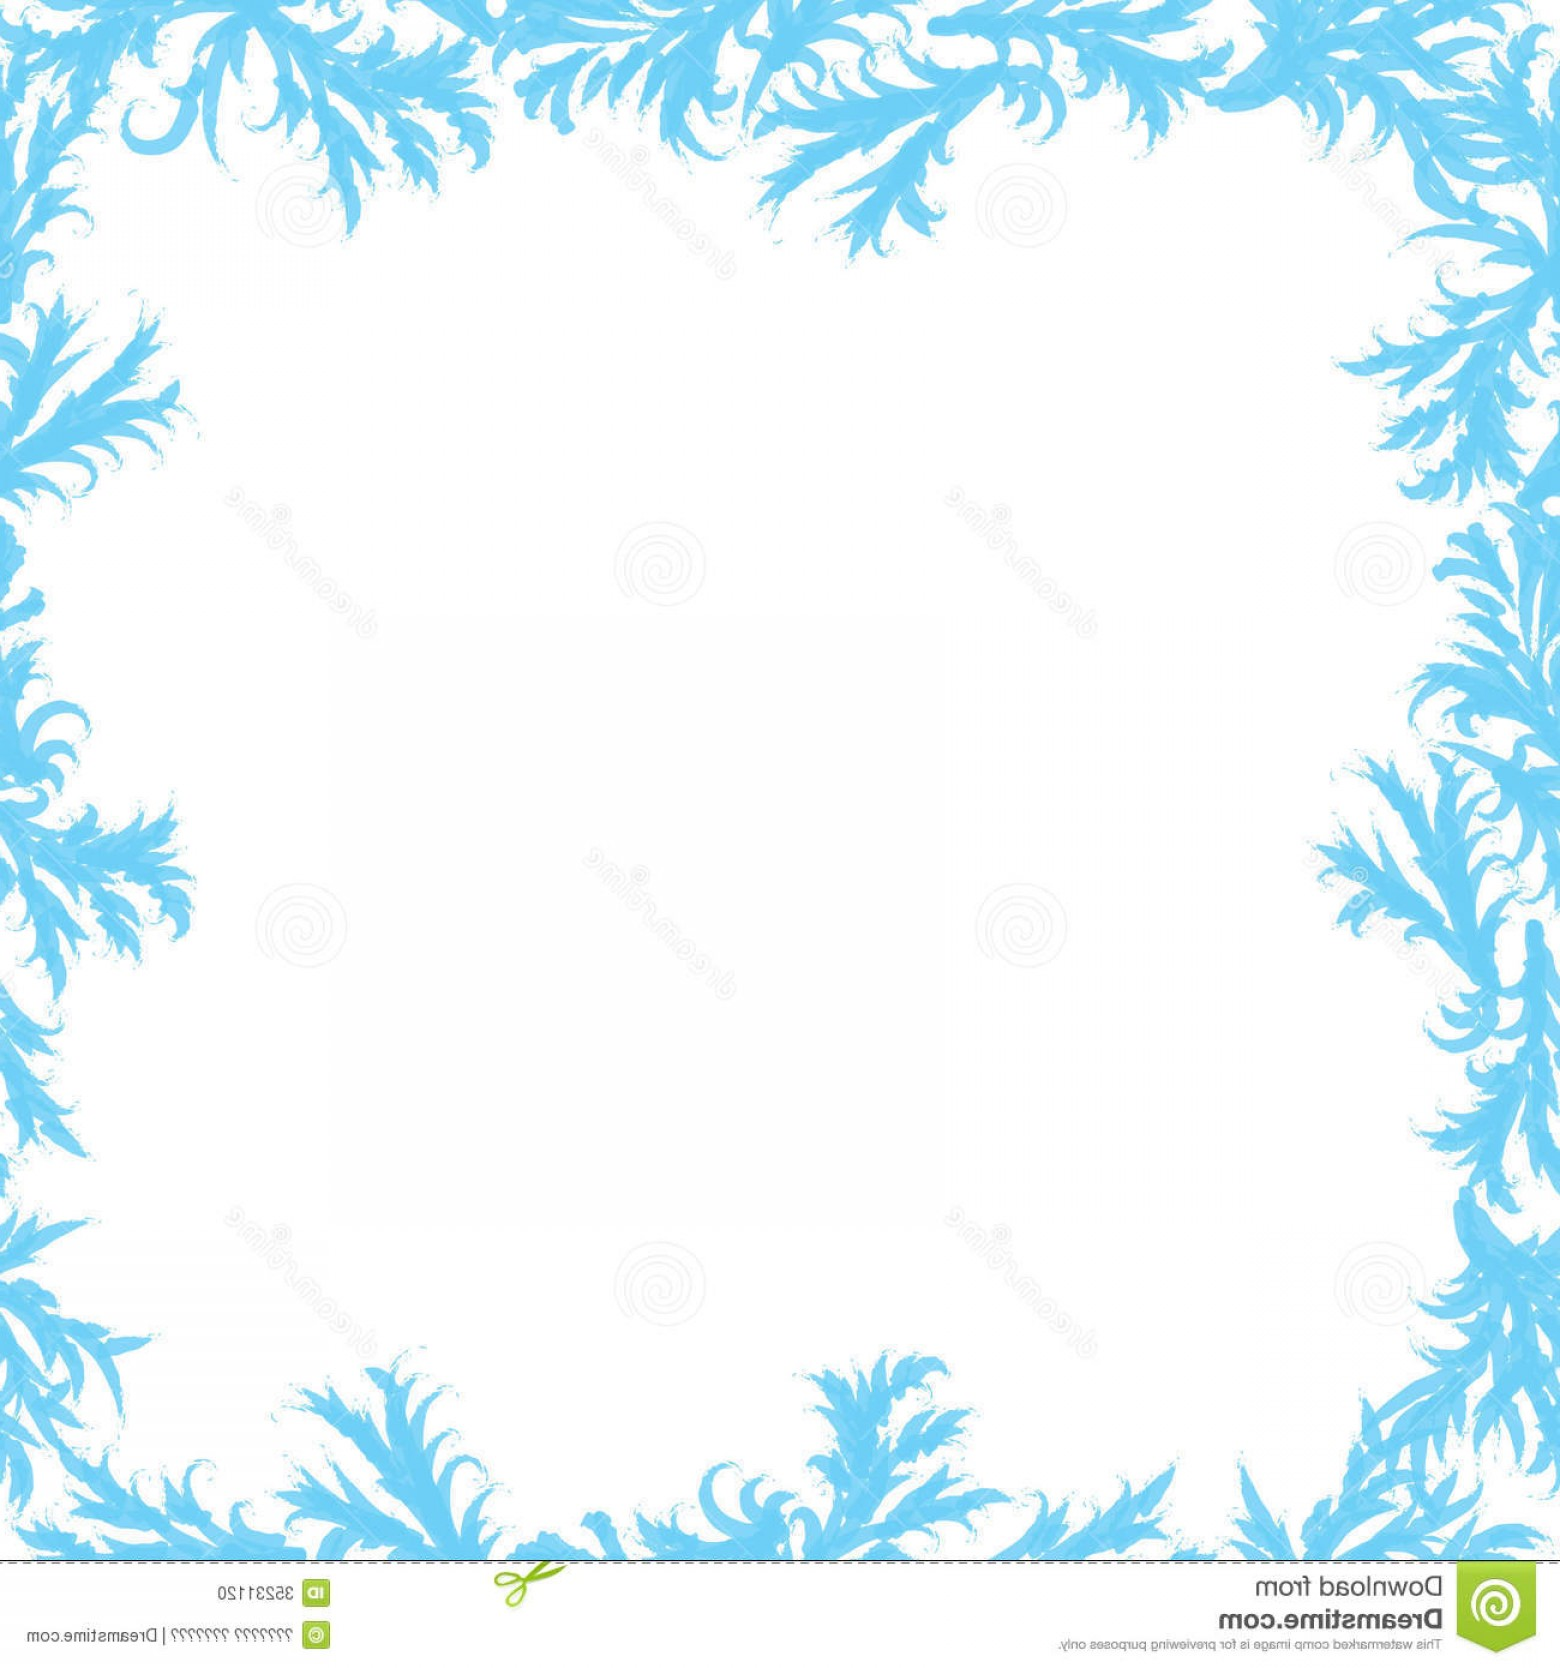 Frost Border Vector: Stock Photo Vector Frame Frost Patterns Glass Frosty Image